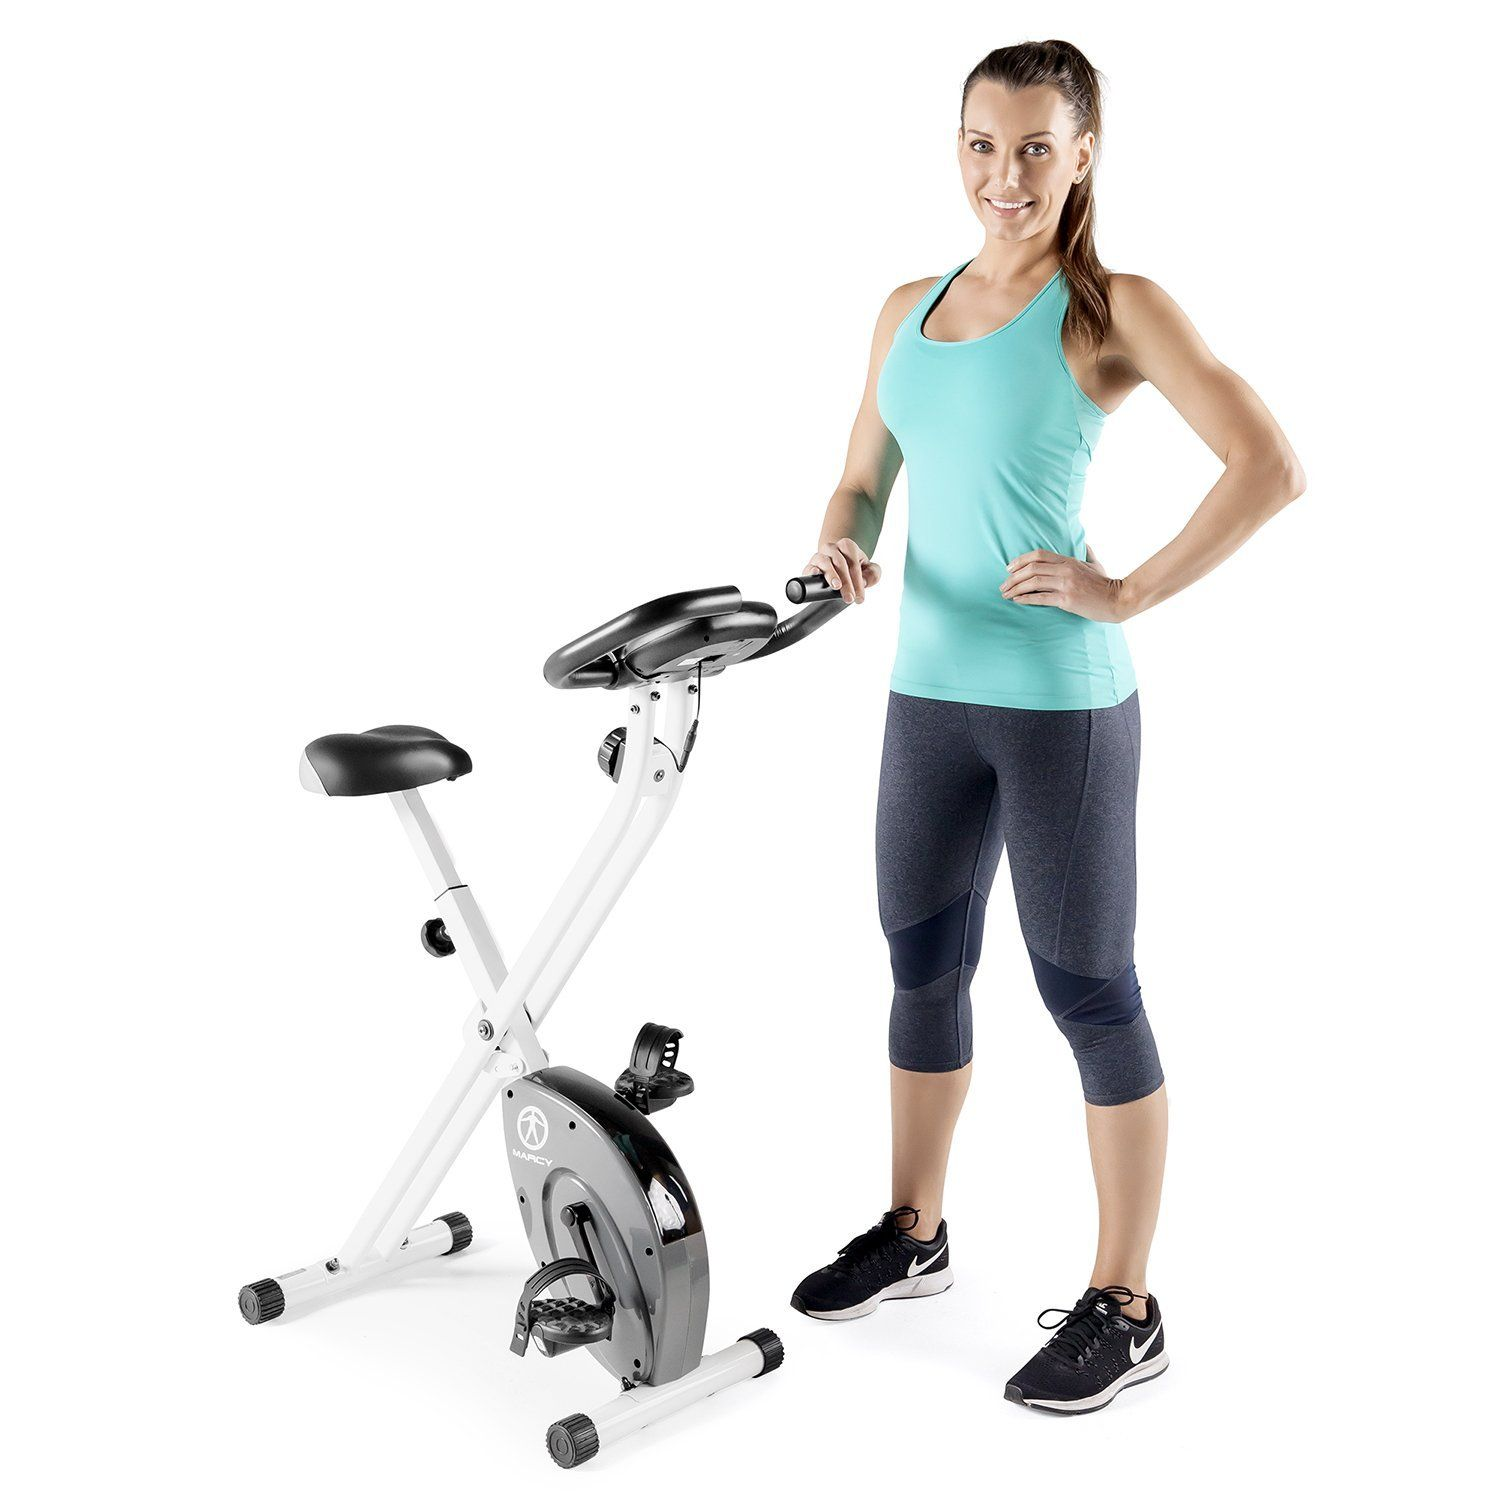 Top 10 Best Upright Exercise Bikes In 2020 Biking Workout